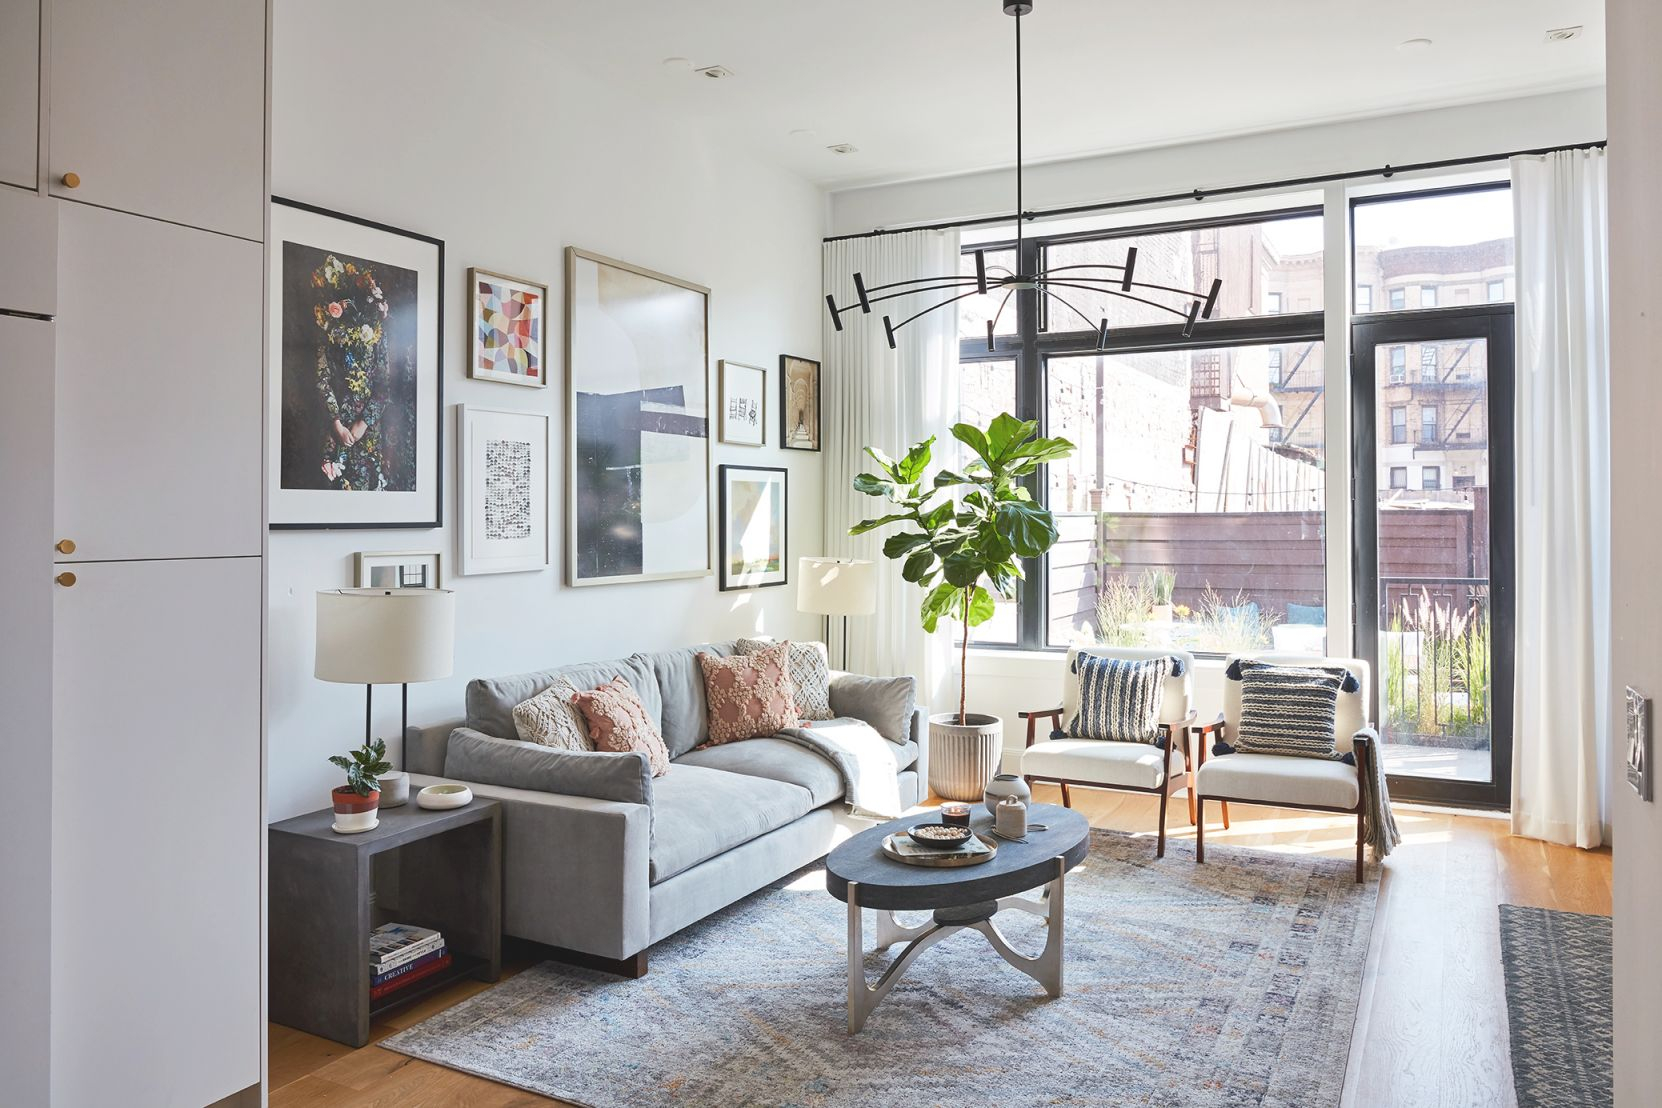 Step Inside The 2019 Real Simple Home—Find 250+ Design Ideas within Home Decorating Ideas Small Living Room